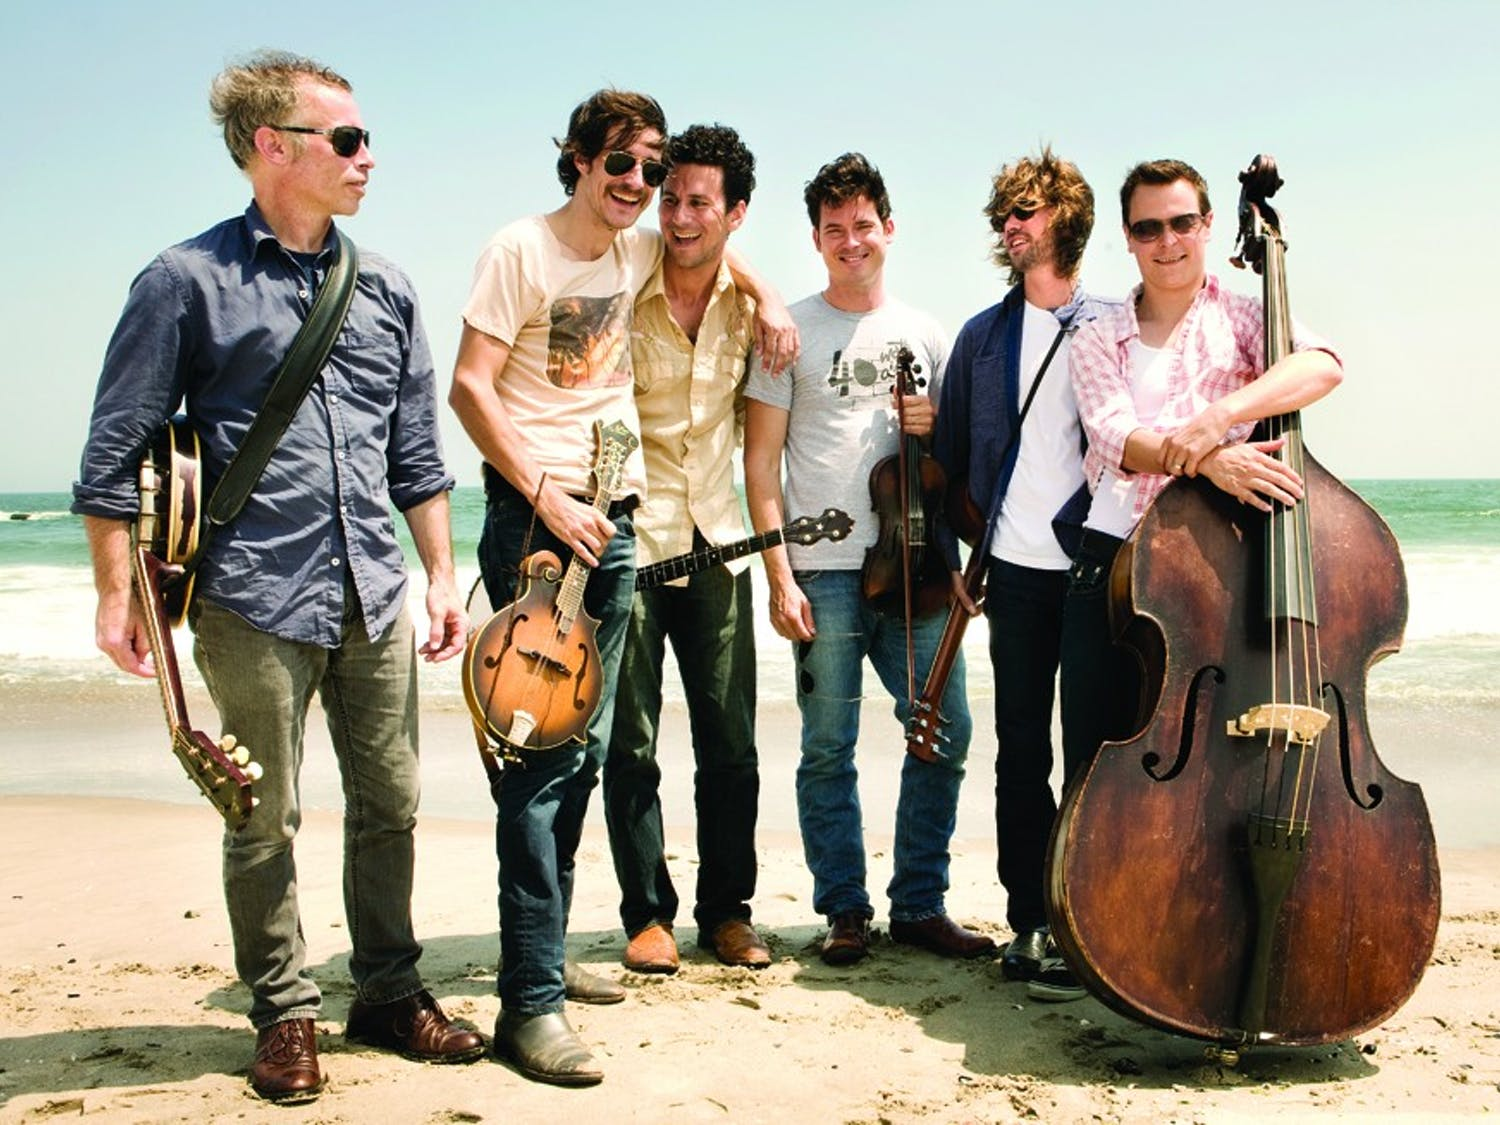 Old Crow Medicine Show, which plays a blend of old-timey string music and other forms of Americana, will perform at Memorial Hall tonight at 8 p.m.  The concert is completely sold out to both students and the public.